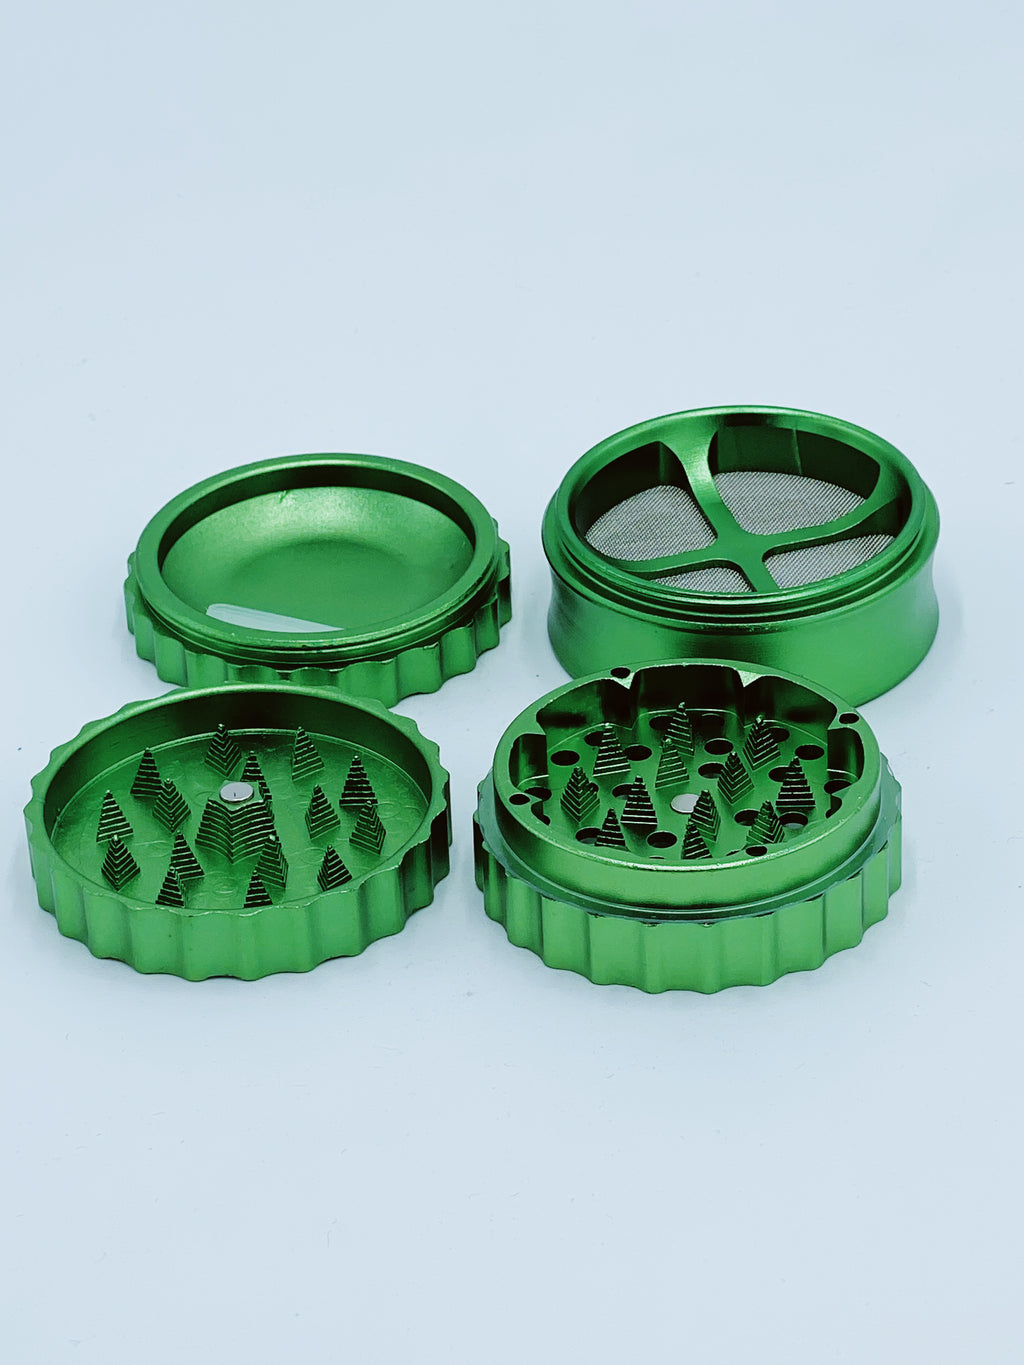 CHEECH GREEN GRINDER - Smoke Country - Land of the artistic glass blown bongs